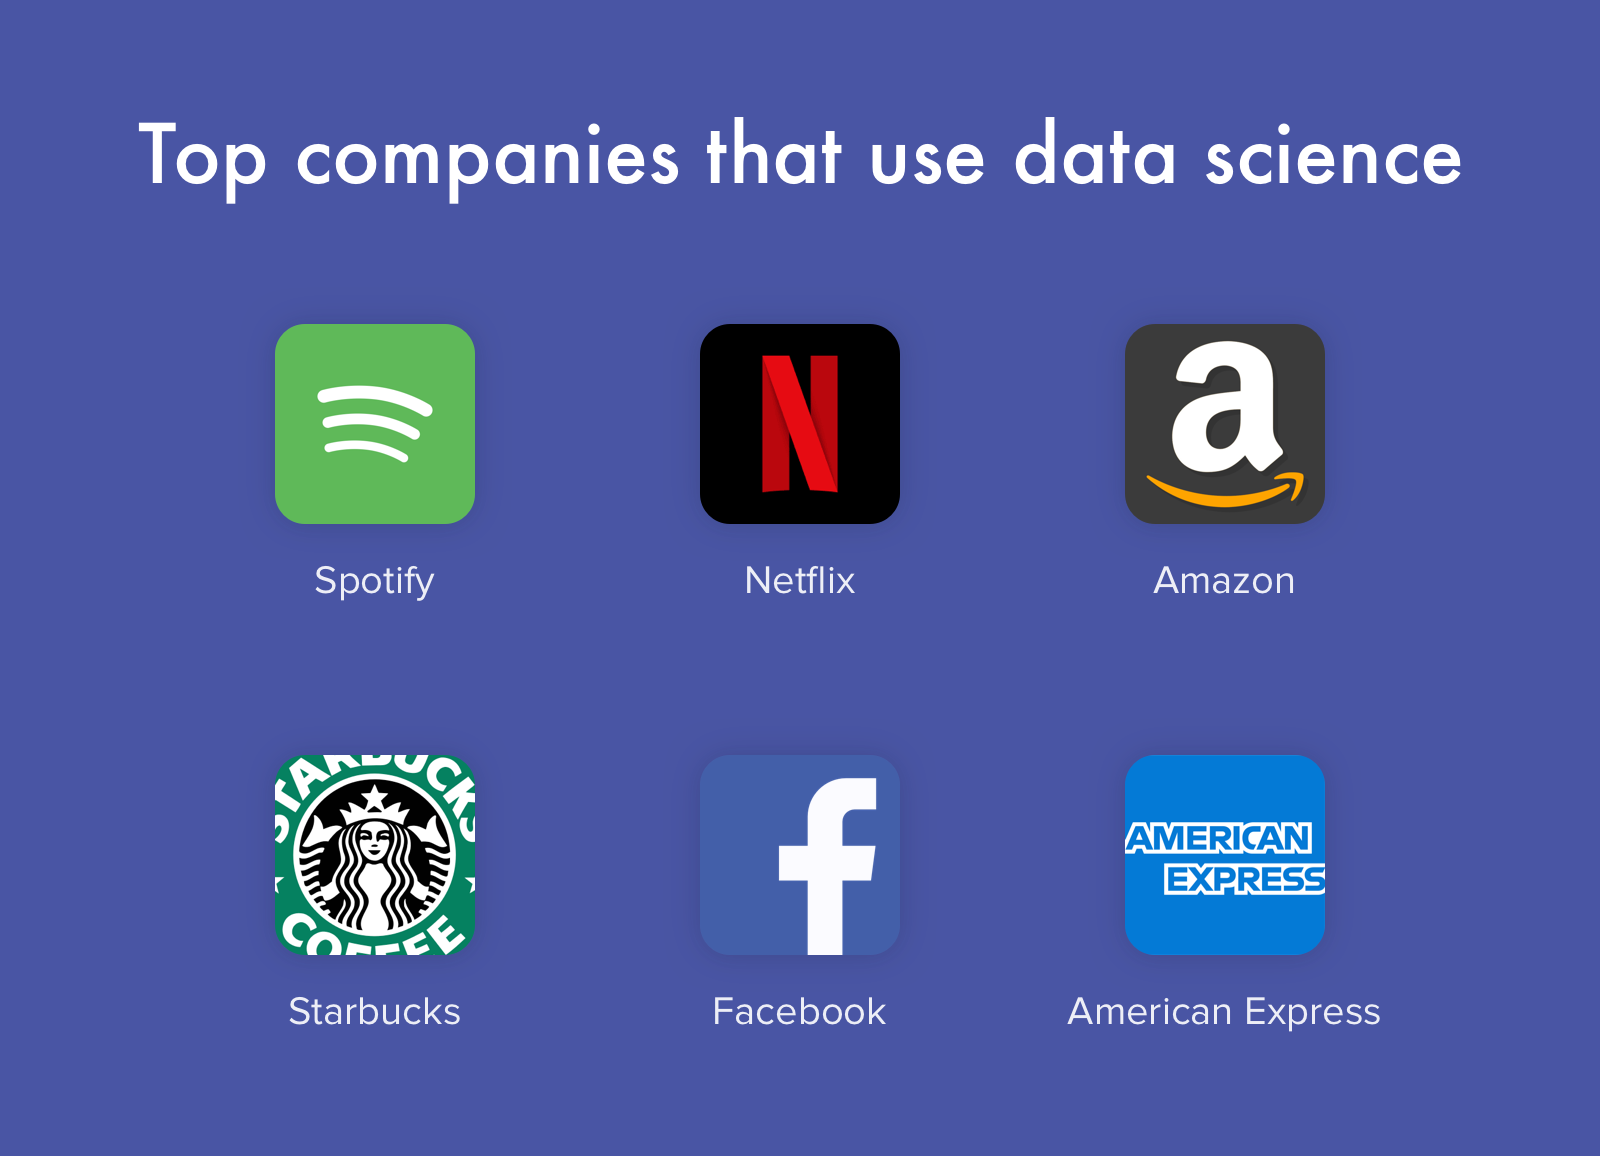 Top companies that use data science